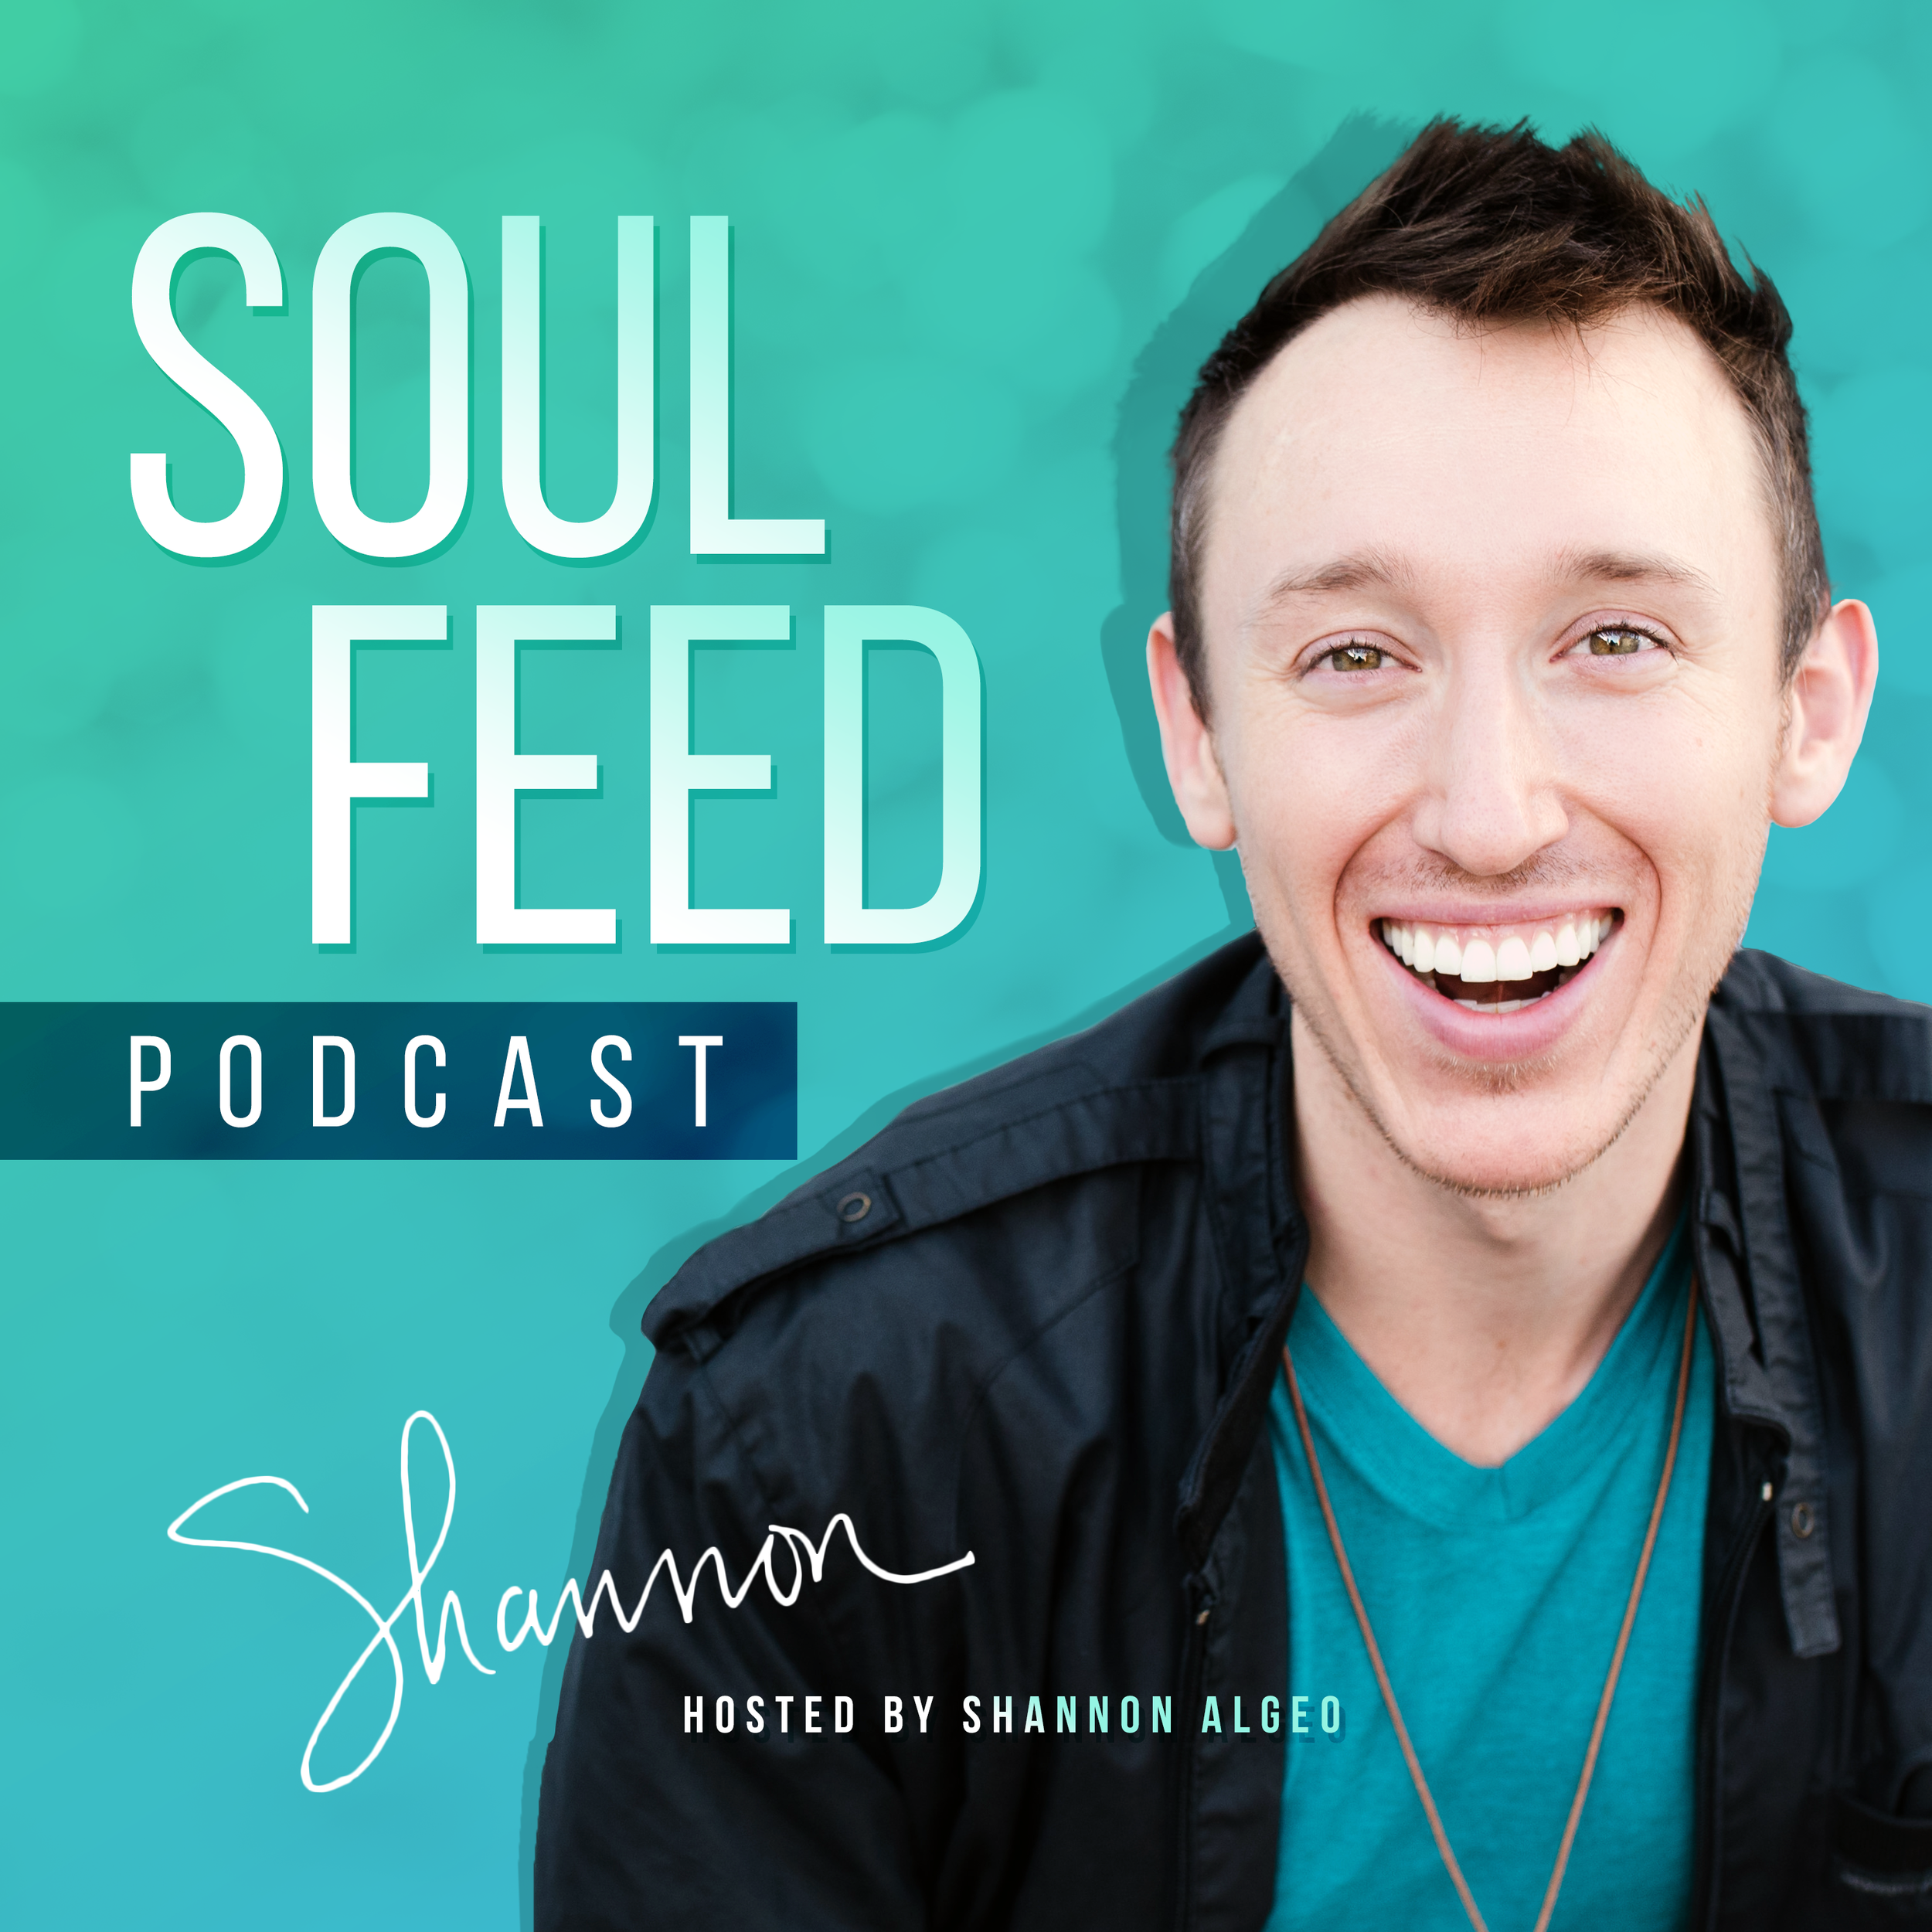 Soul Feed with Shannon Algeo - How to Collaborate Successfully in Your Business (with coaches Fern Olivia and Sarah Anne Stewart)